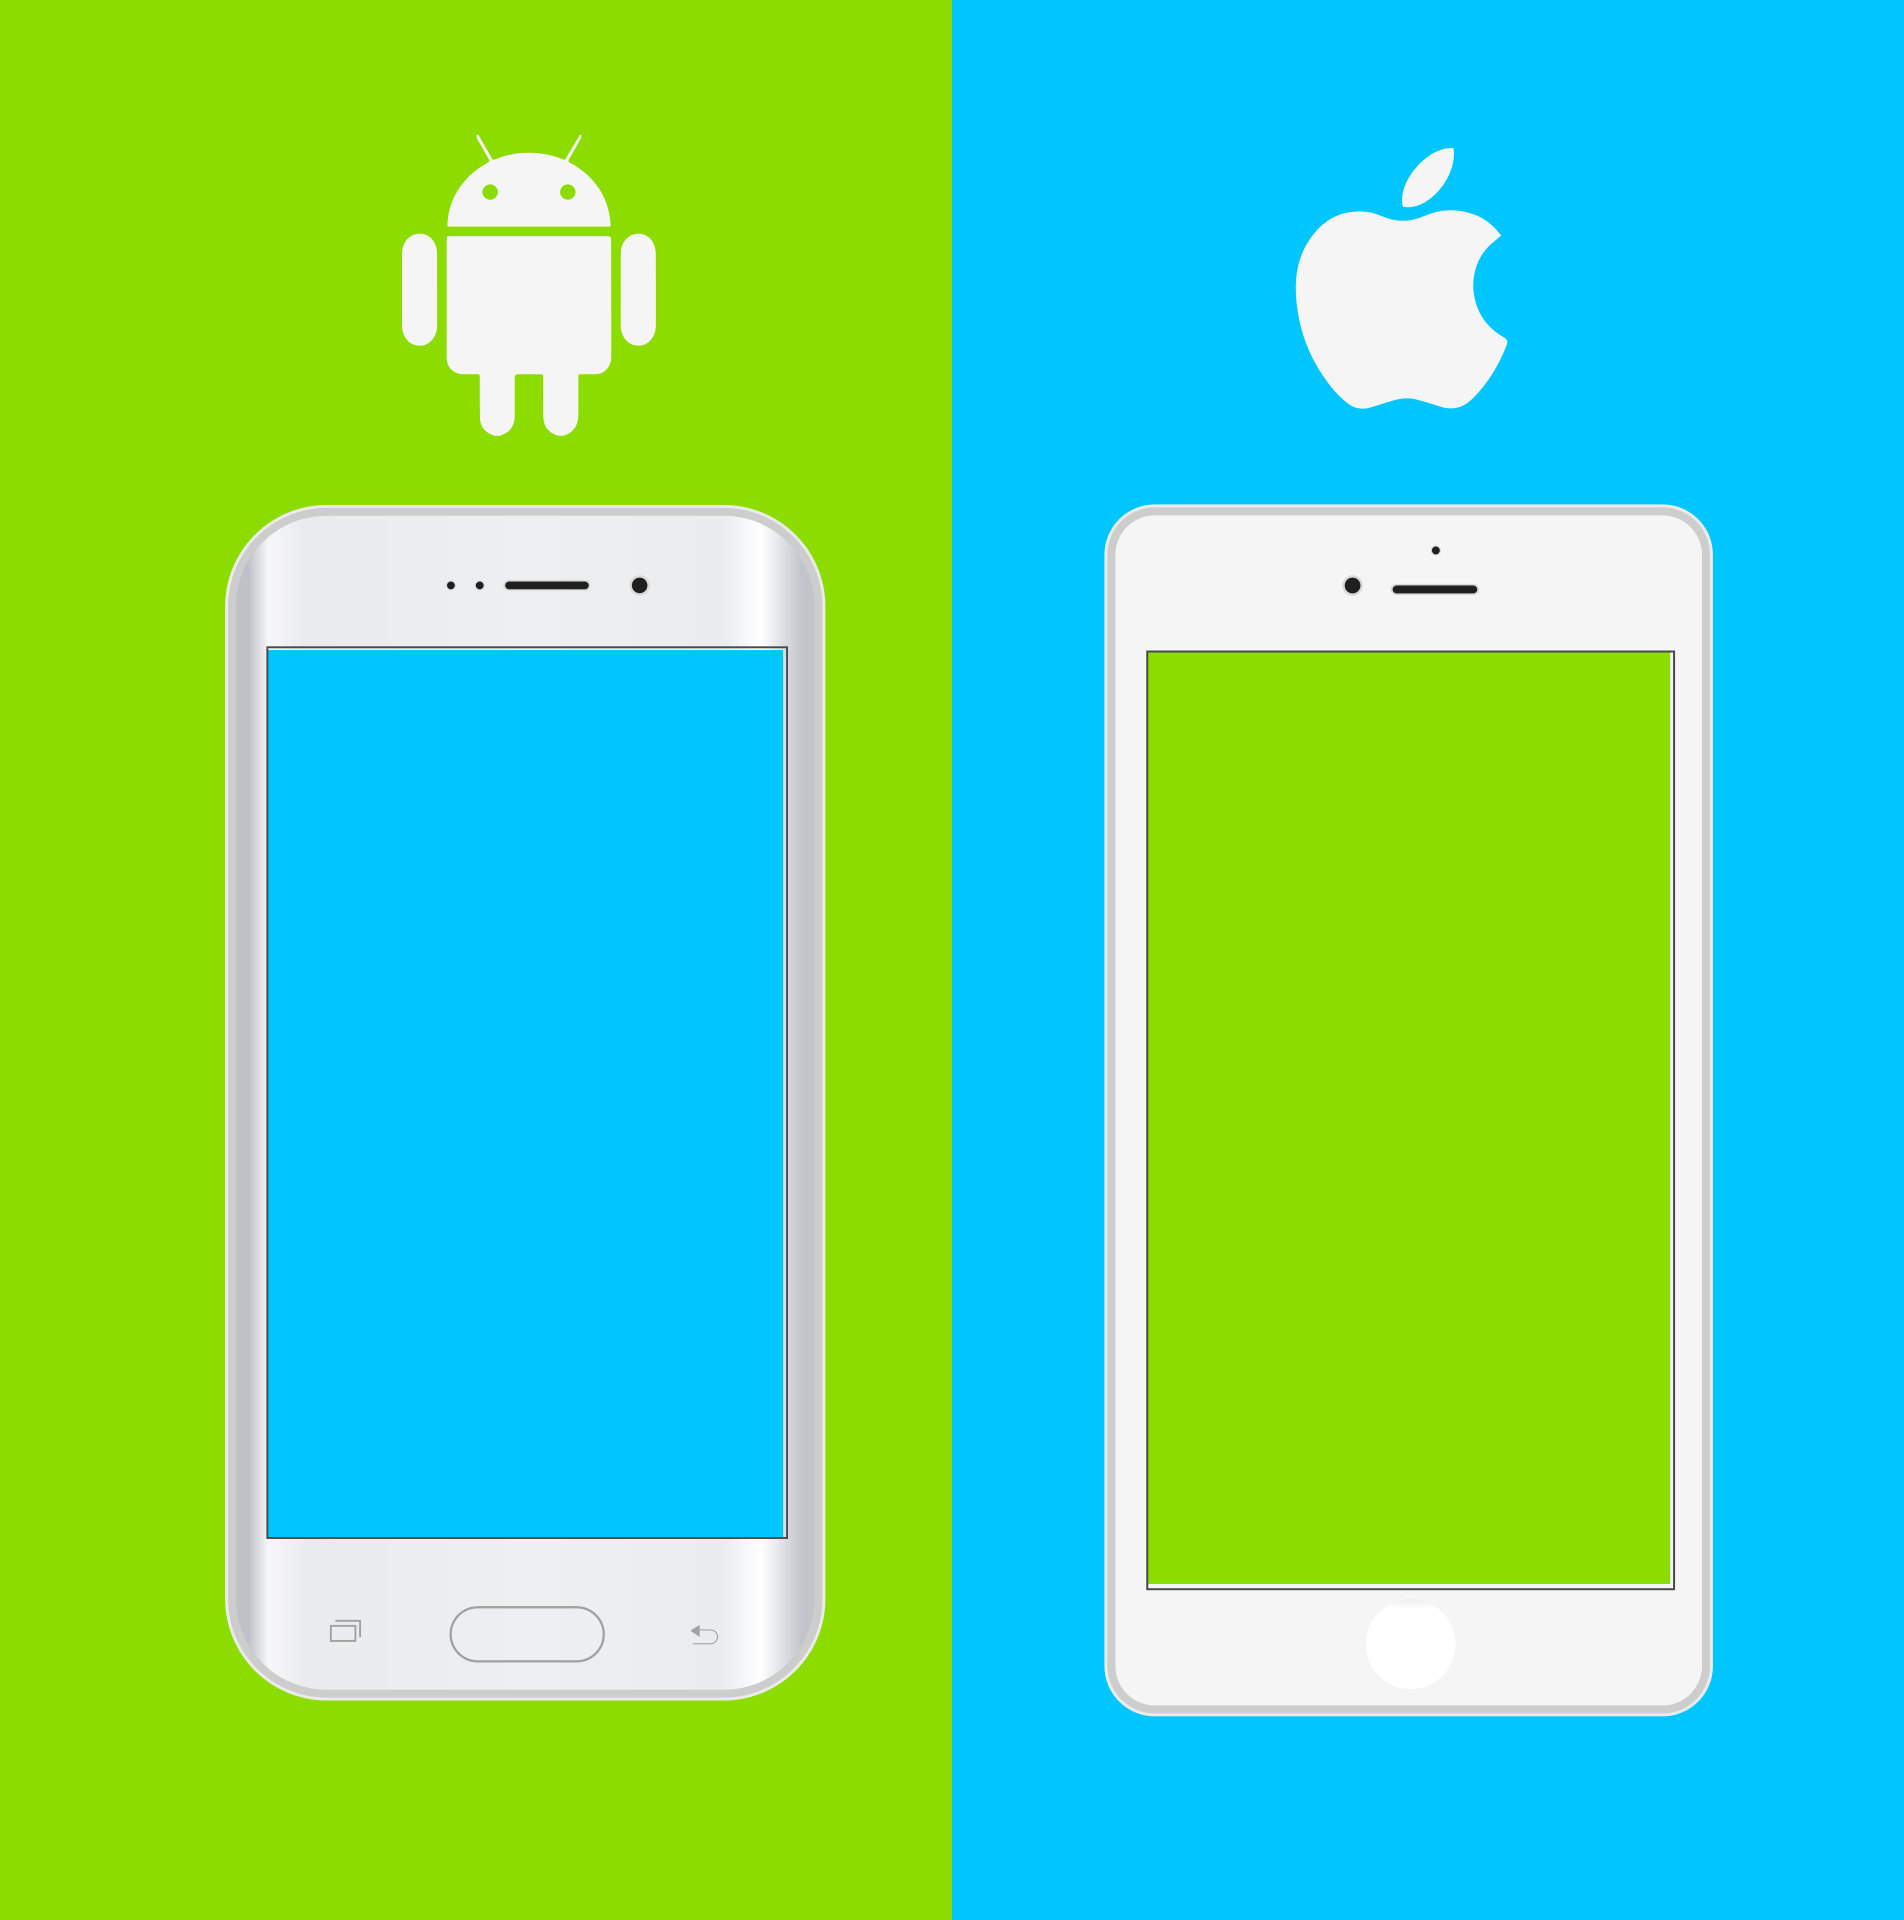 How to Run iOS Apps on Android | Step-by-Step Guide